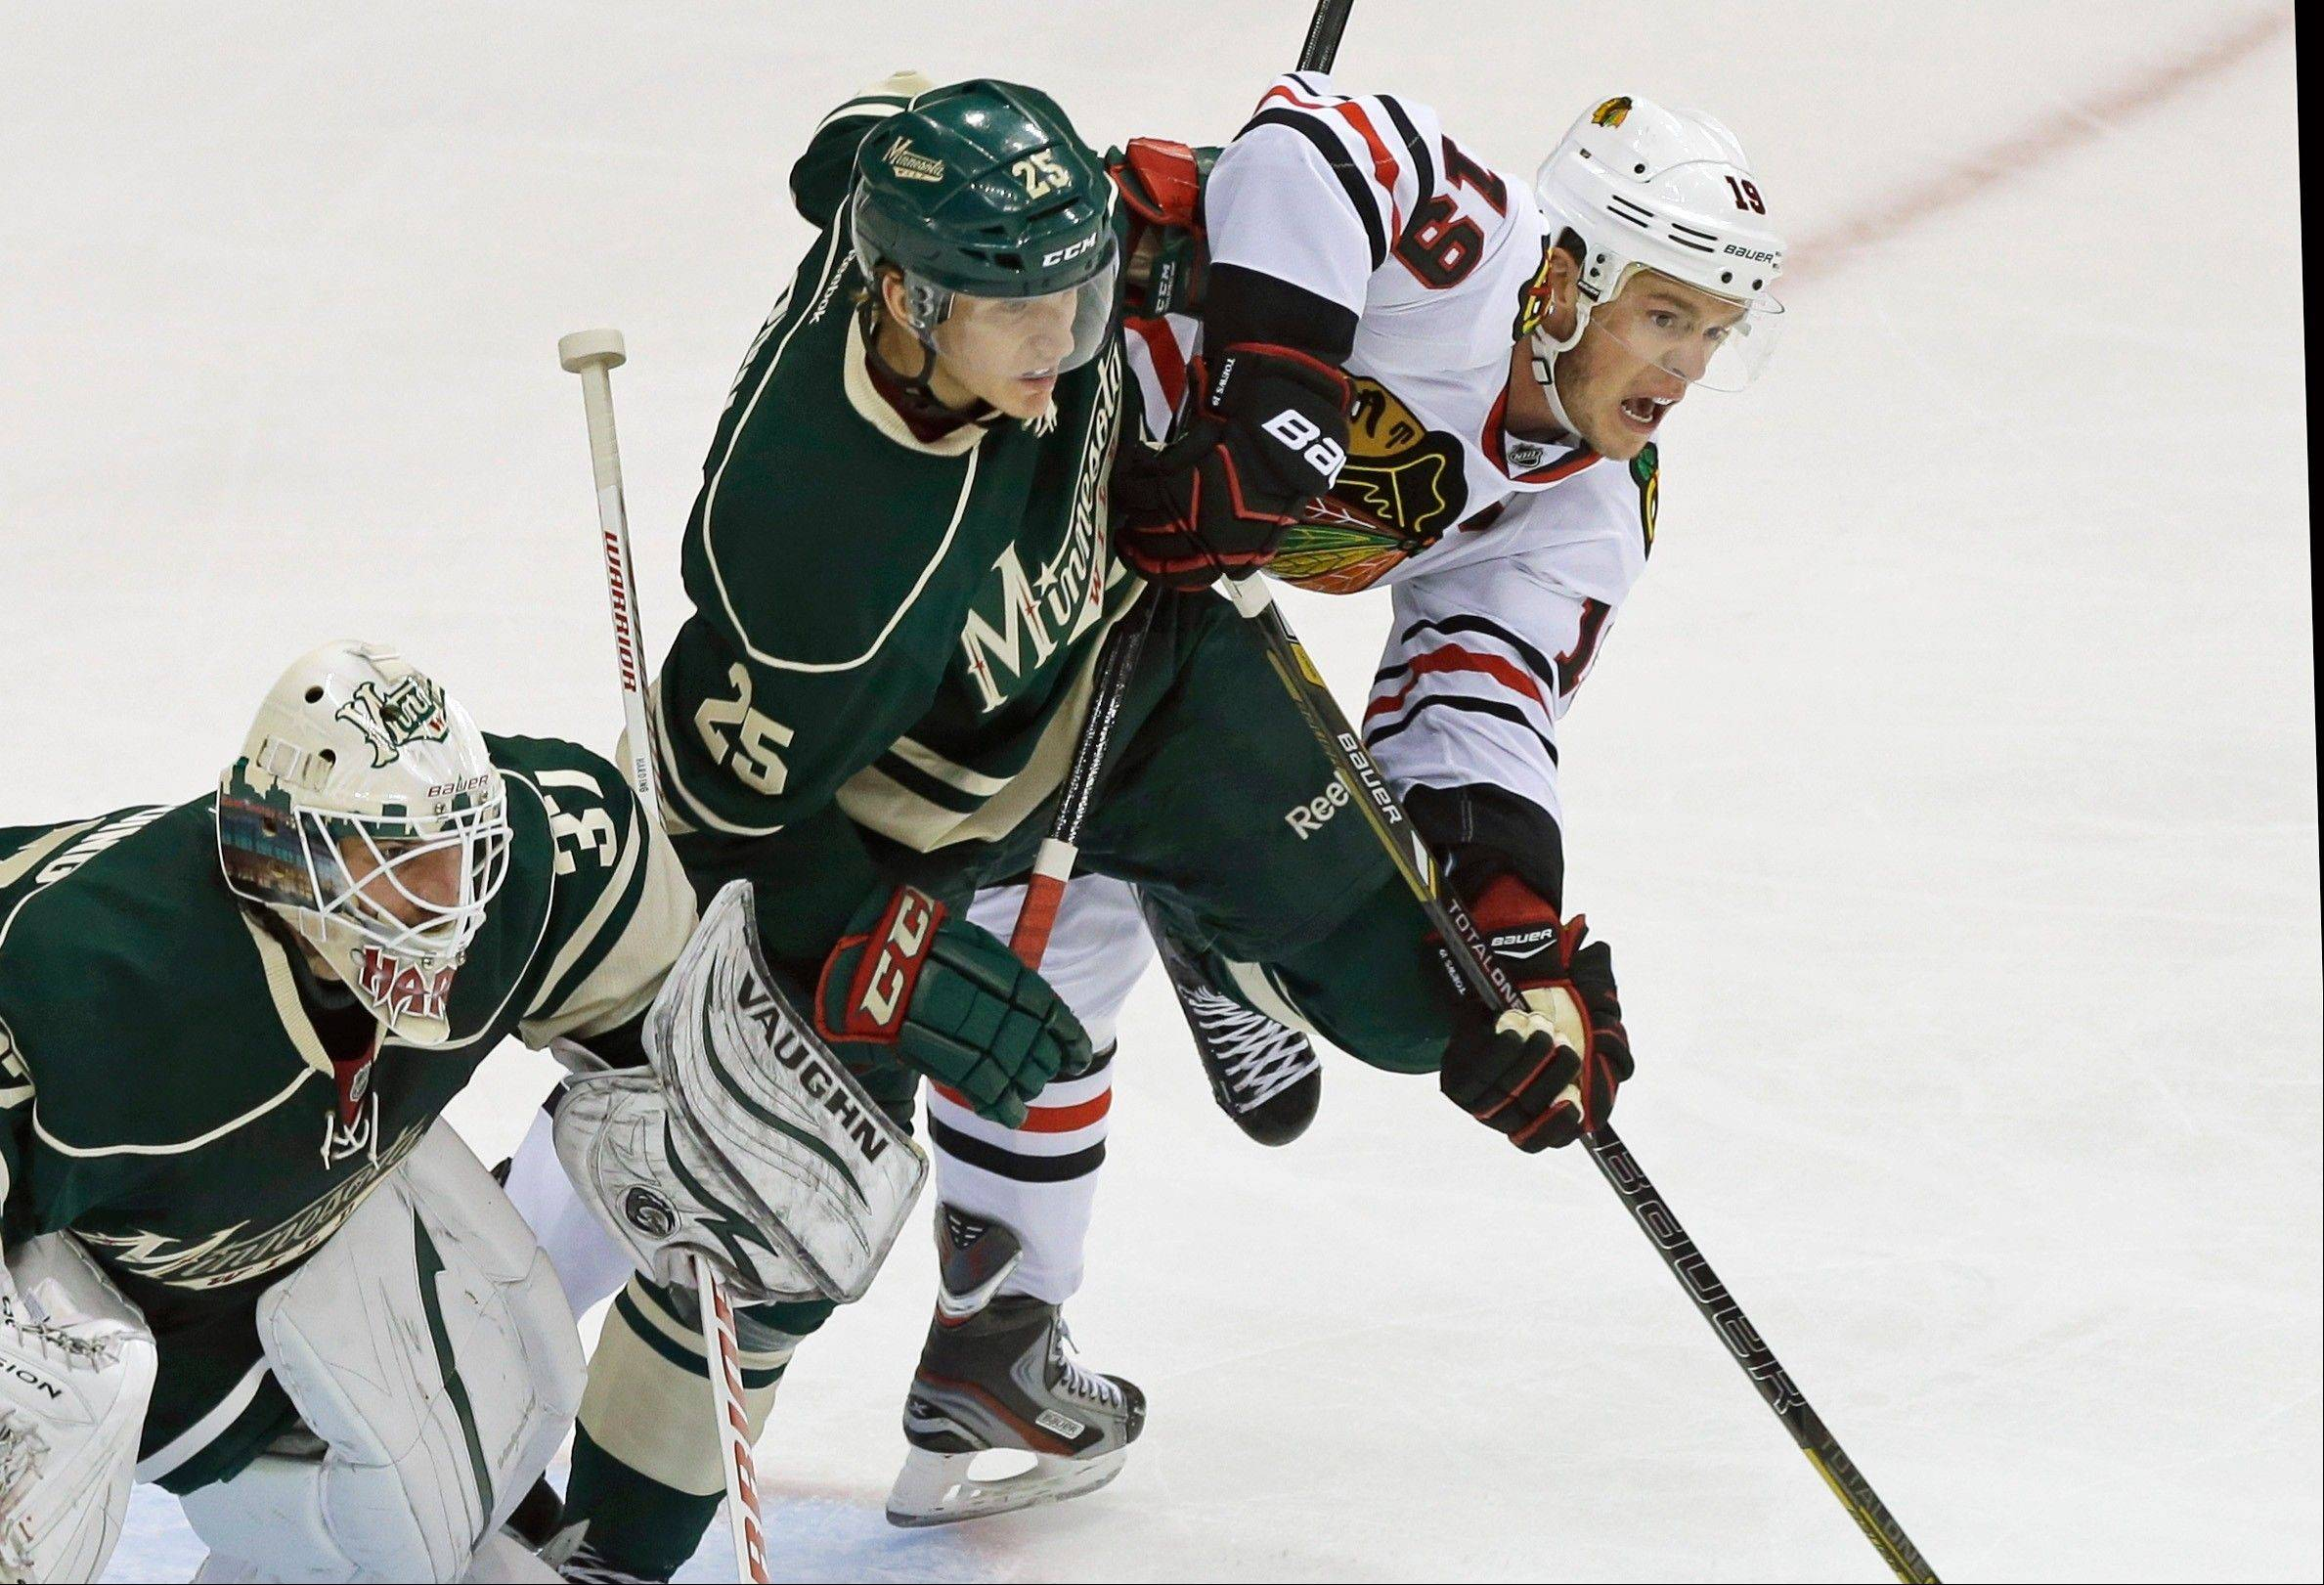 Minnesota�s Jonas Brodin, center, keeps the Blackhawks� Jonathan Toews, right, in check as he helps goalie Josh Harding defend the net in the first period of Game 4 of an NHL hockey Stanley Cup playoff series, Tuesday, May 7, 2013 in St. Paul, Minn.